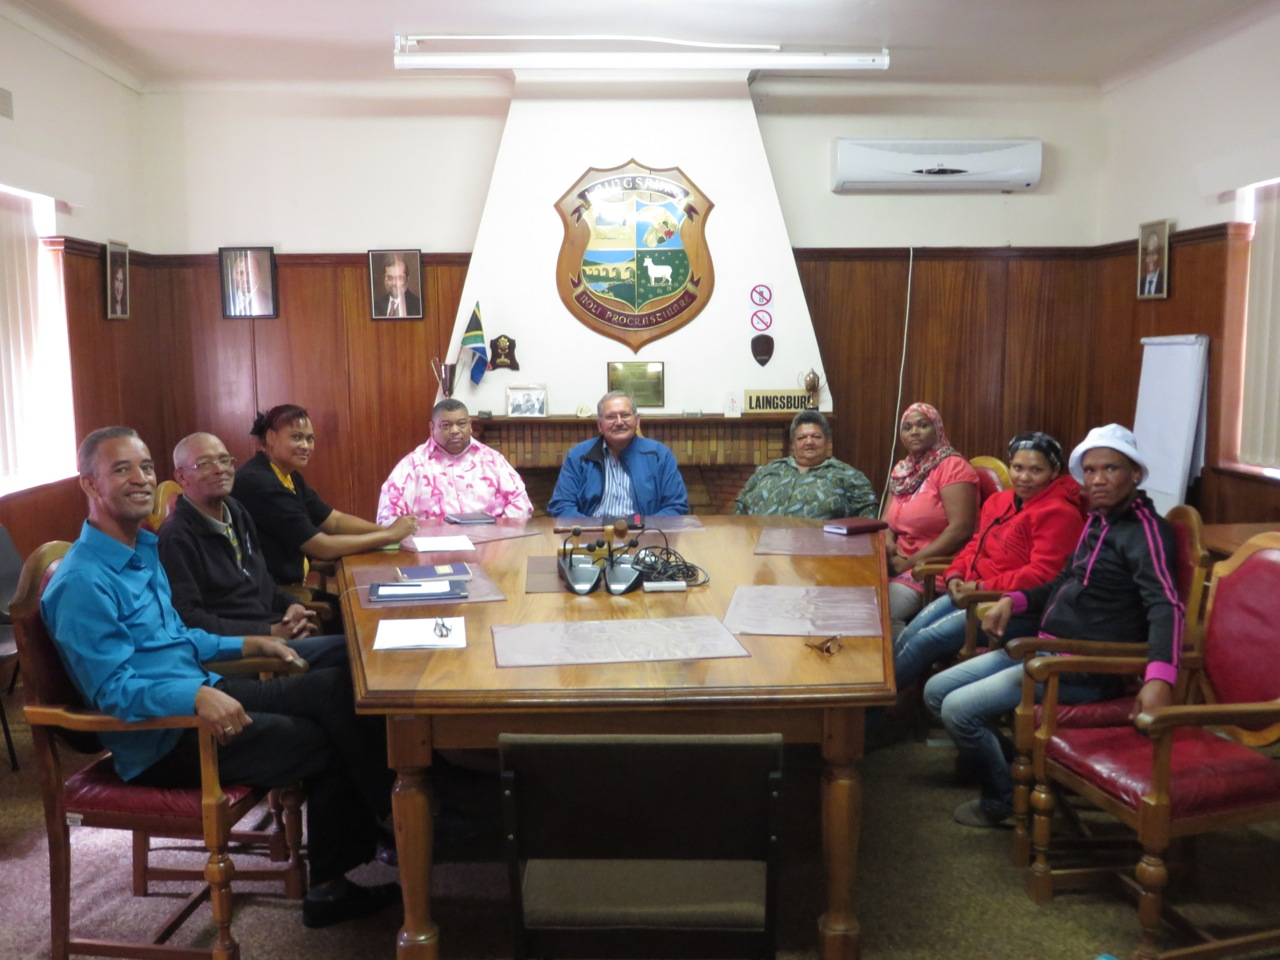 Meeting with Mayor, councillor and economic development officer